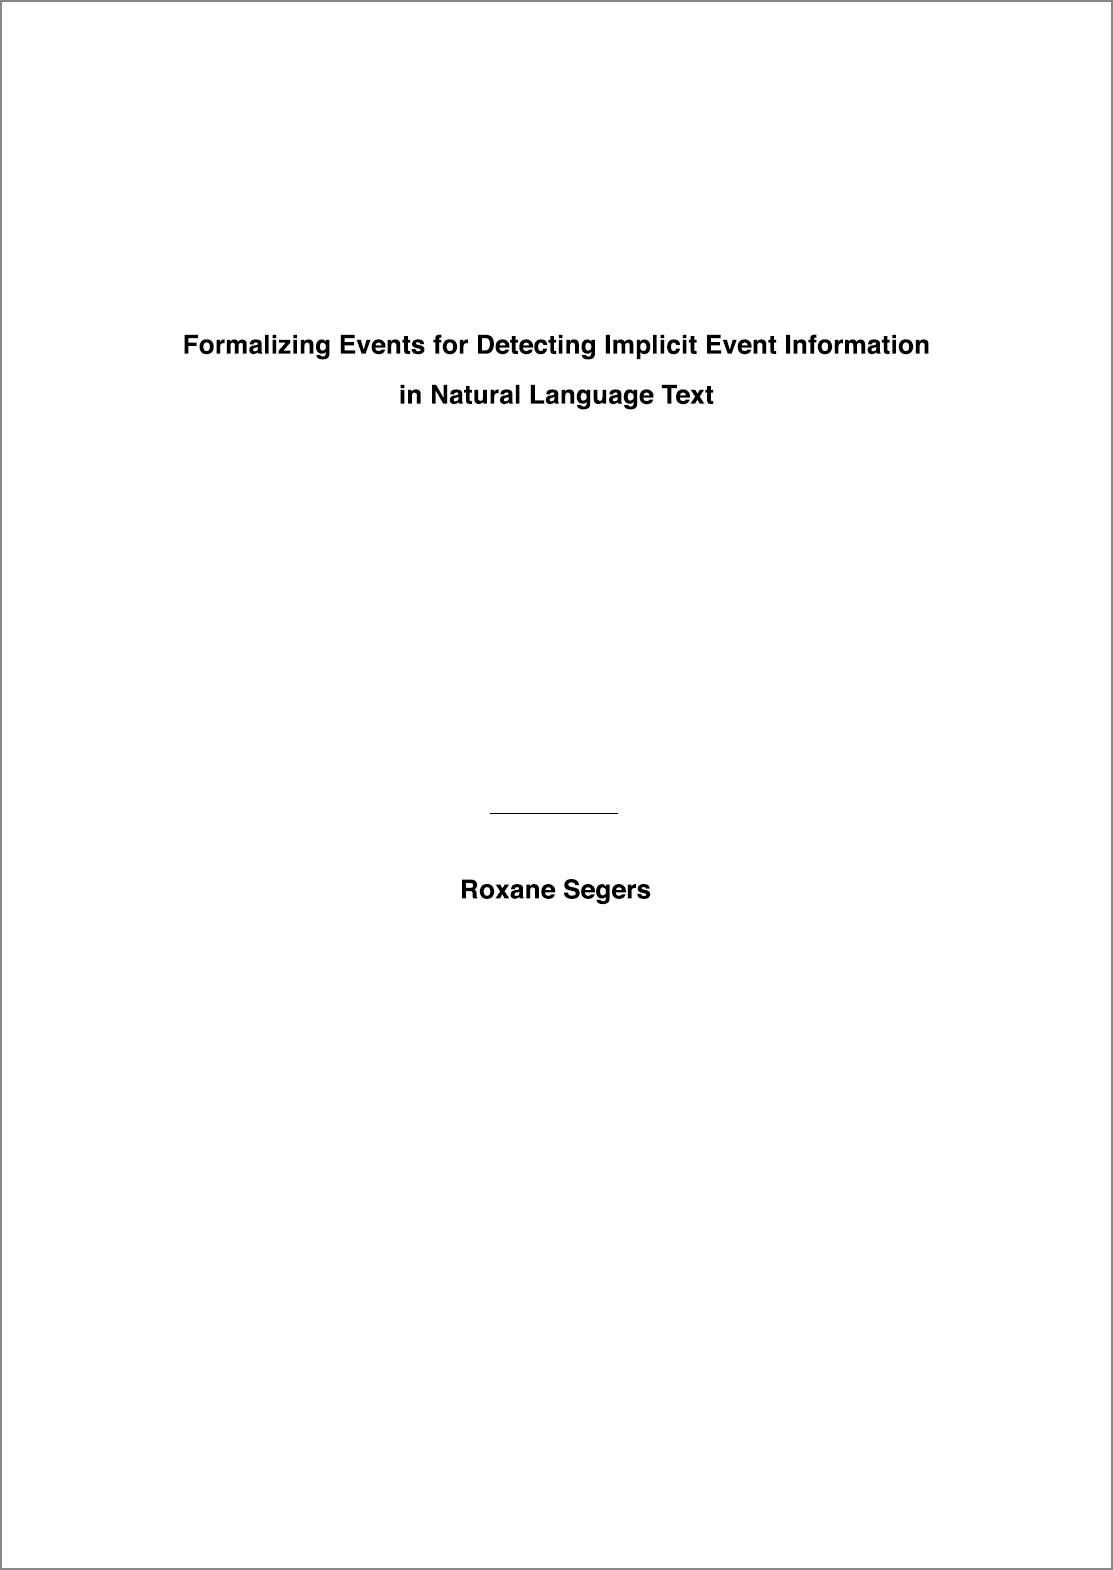 Formalizing Events for Detecting Implicit Event Information in Natural Language Text